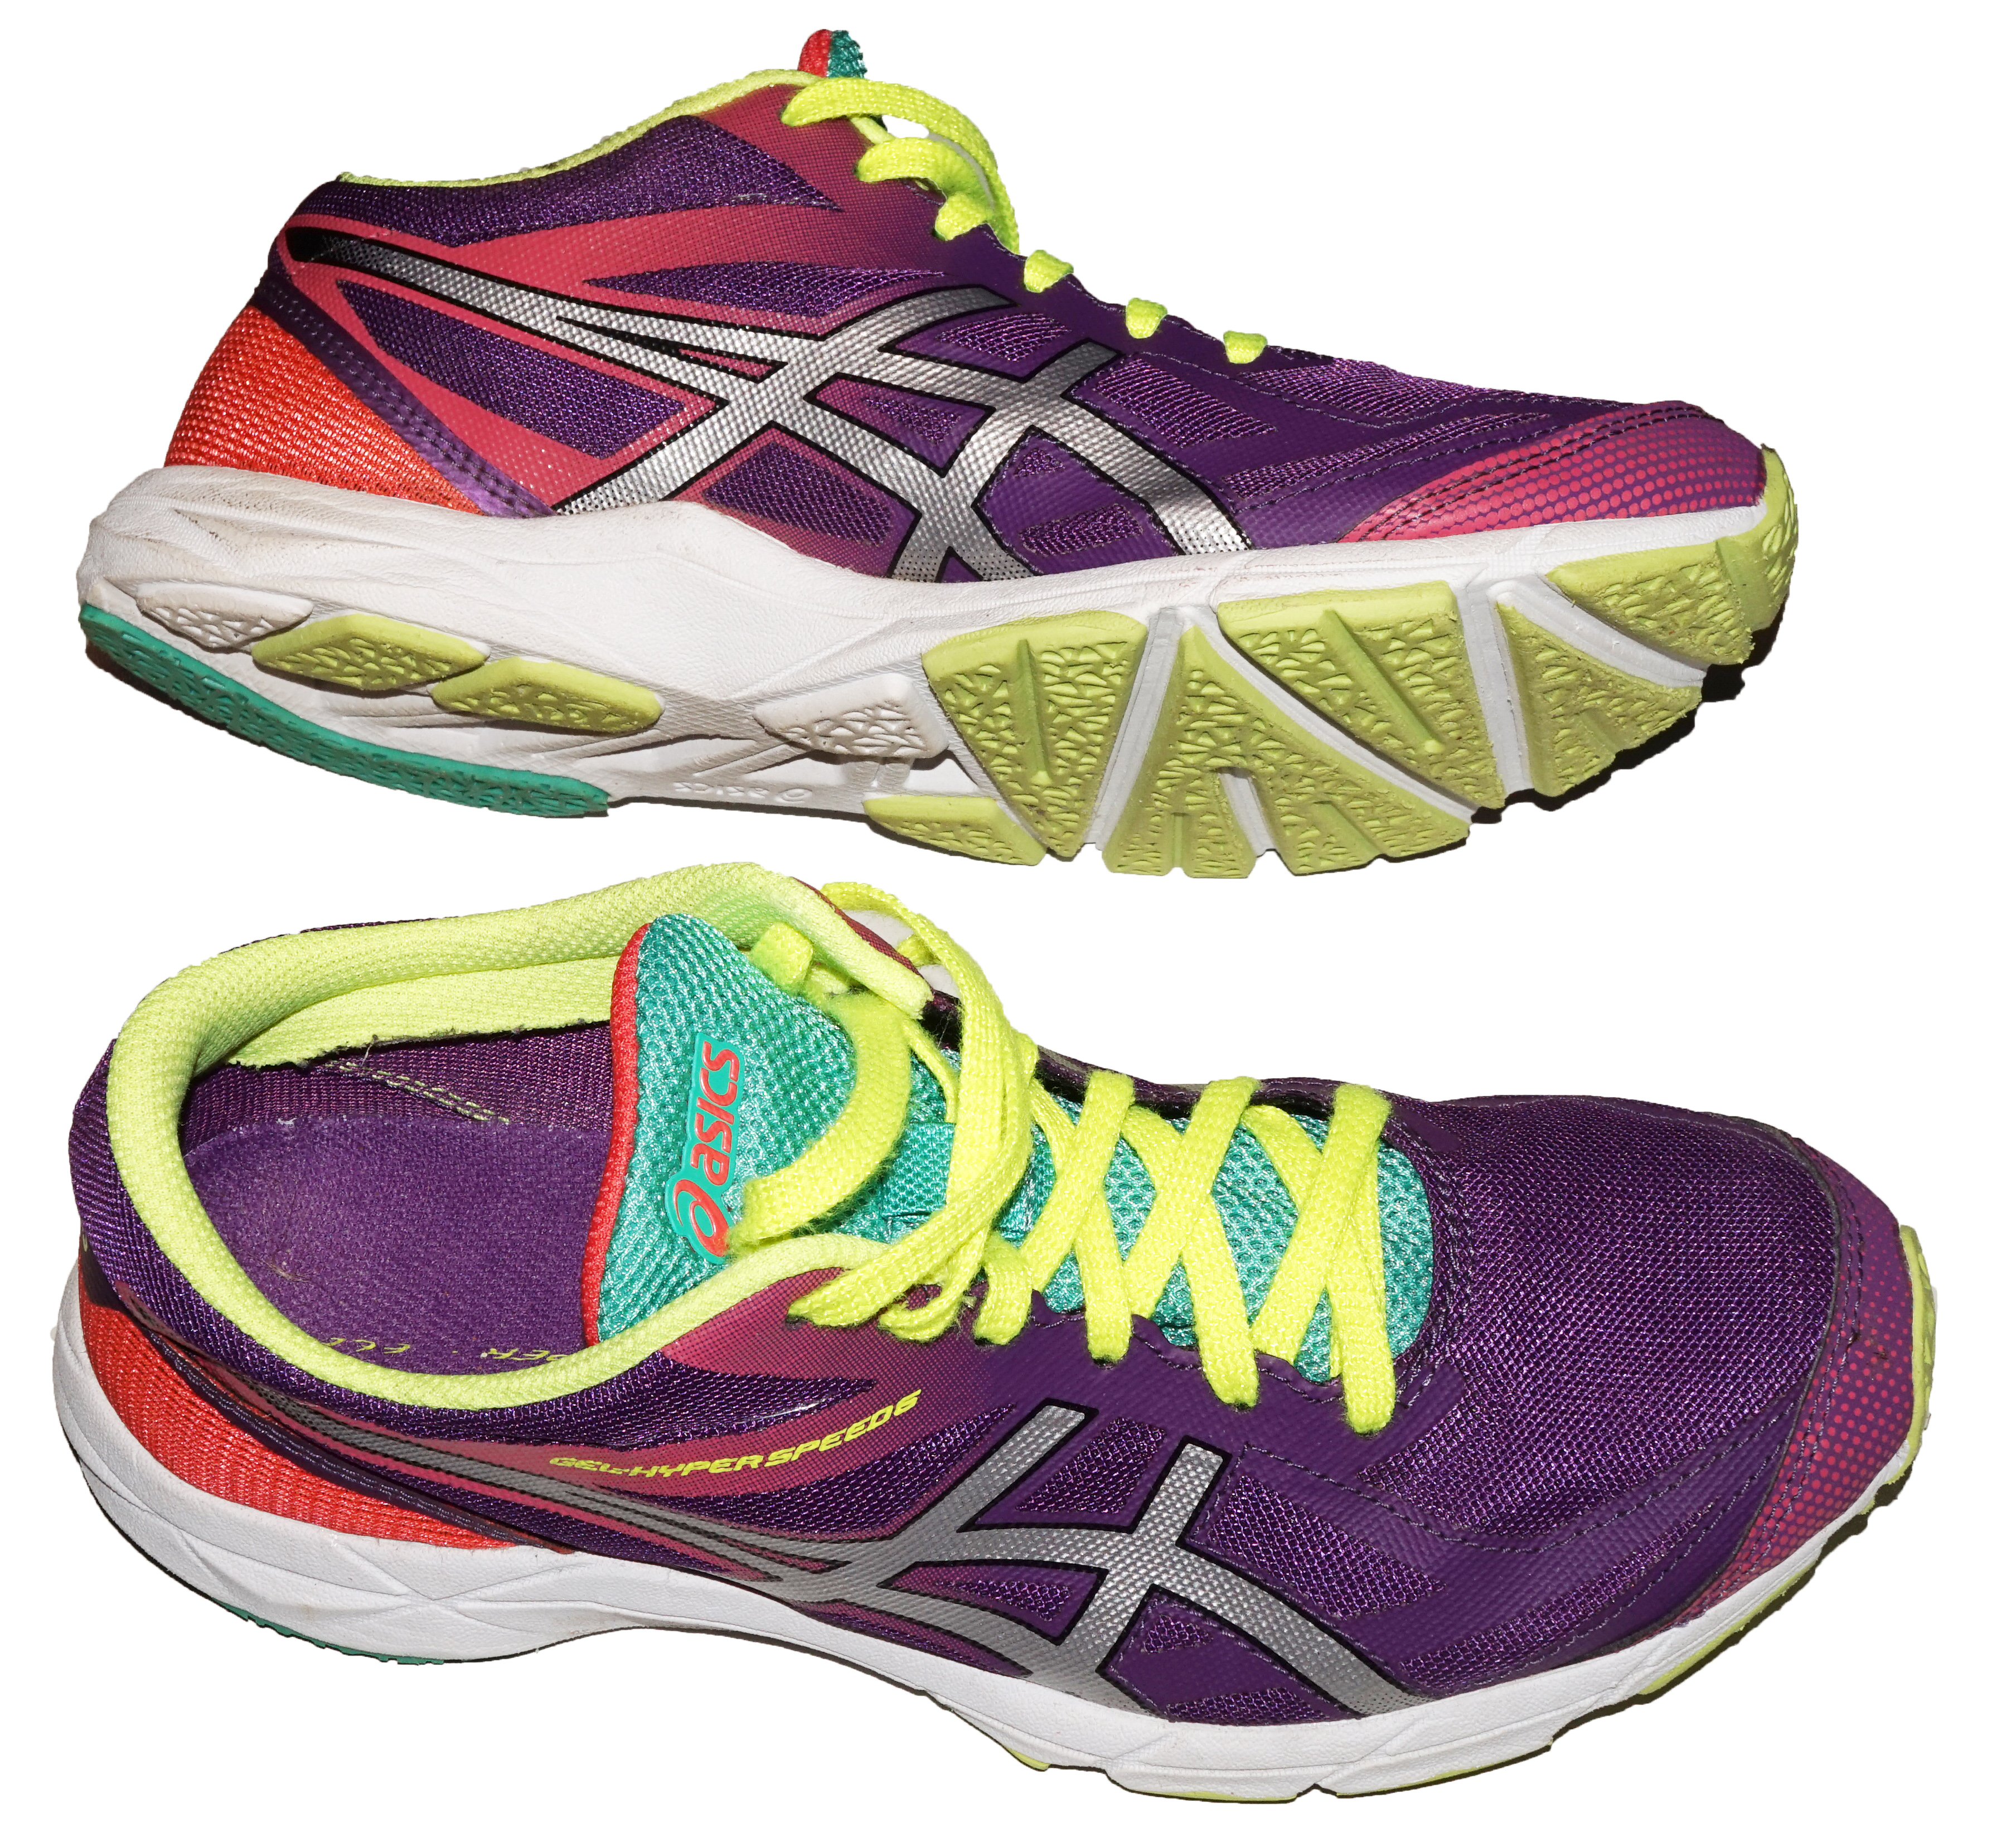 File:Running shoes.jpg